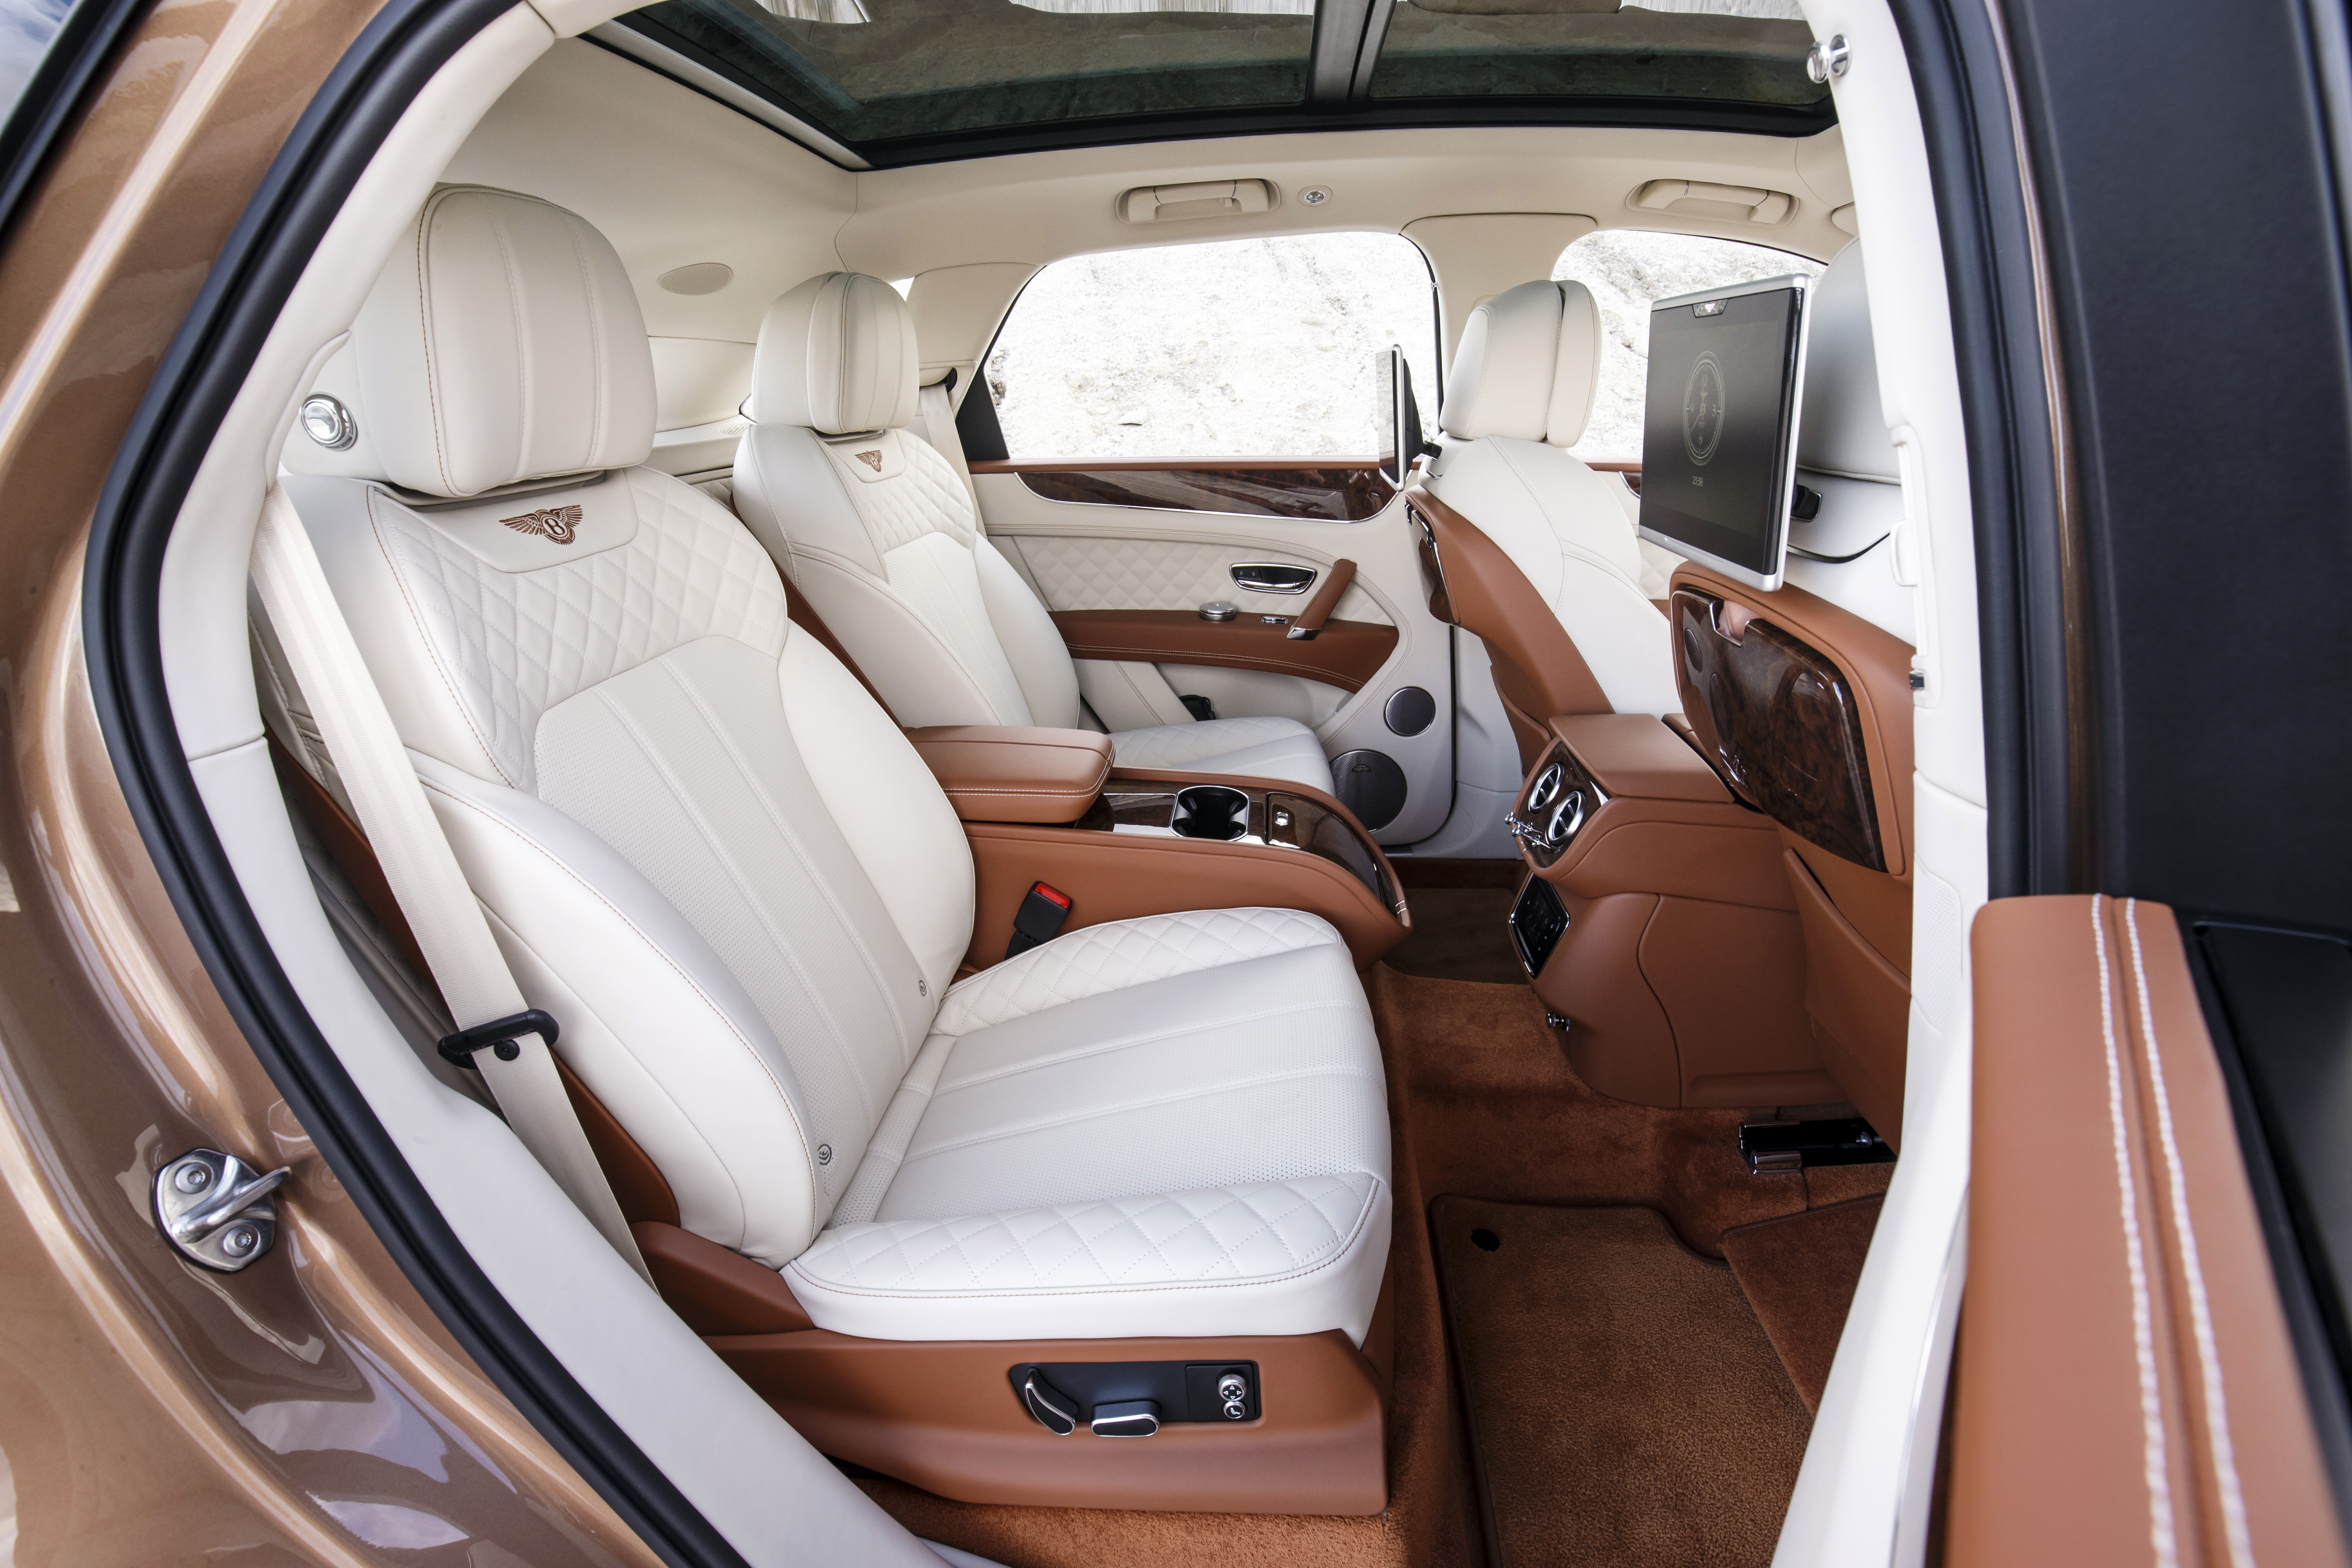 Bentley Bentayga Review The Ultimate Luxury Suv Interior And Tech Evo